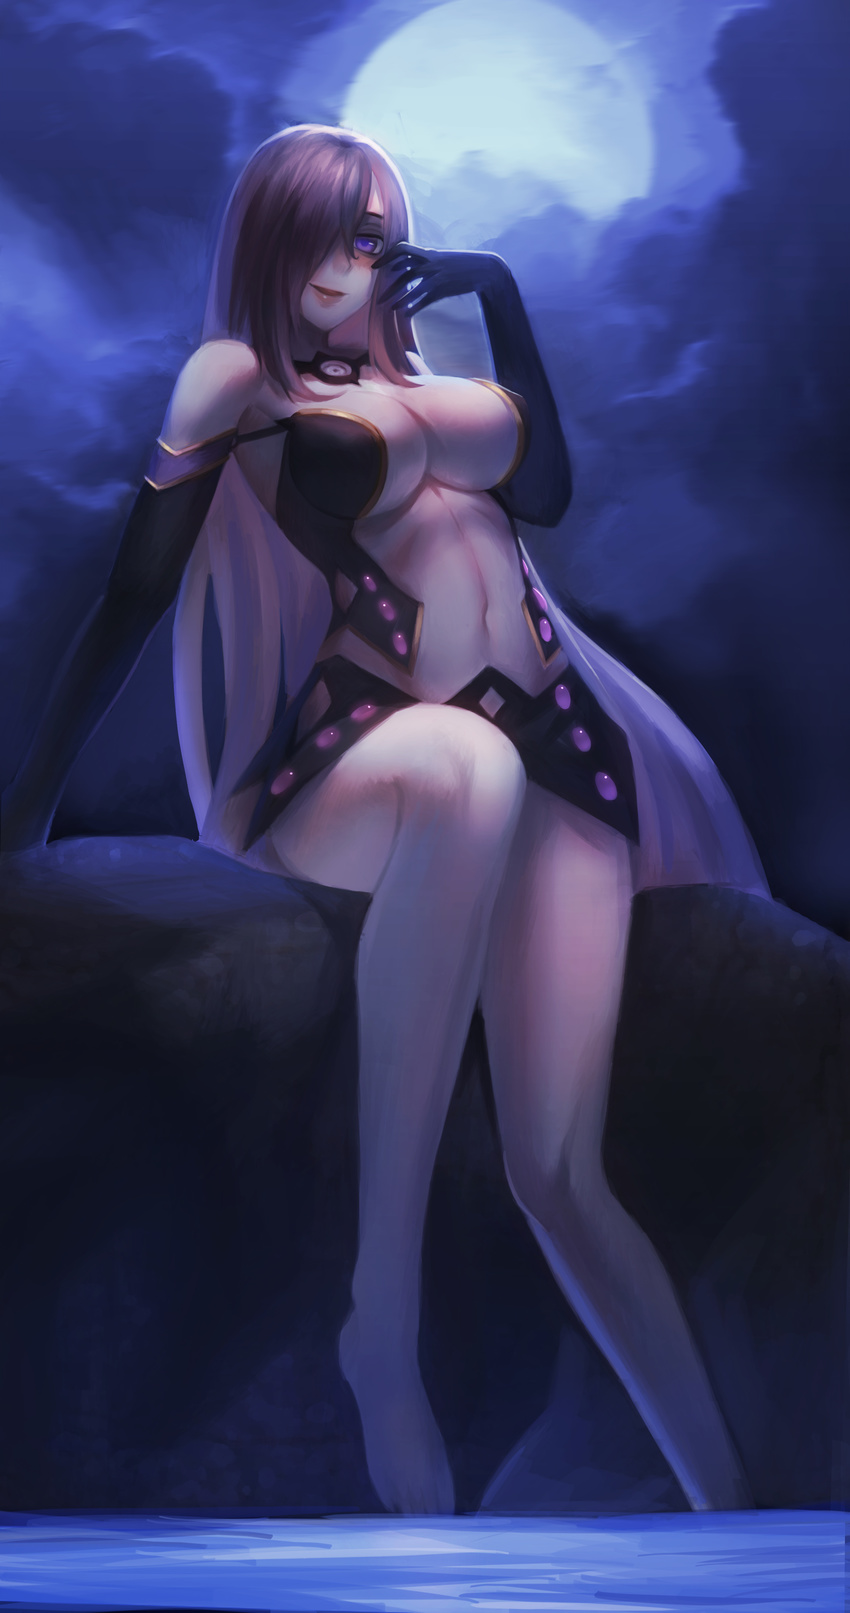 Download anime high monster sex women adult image